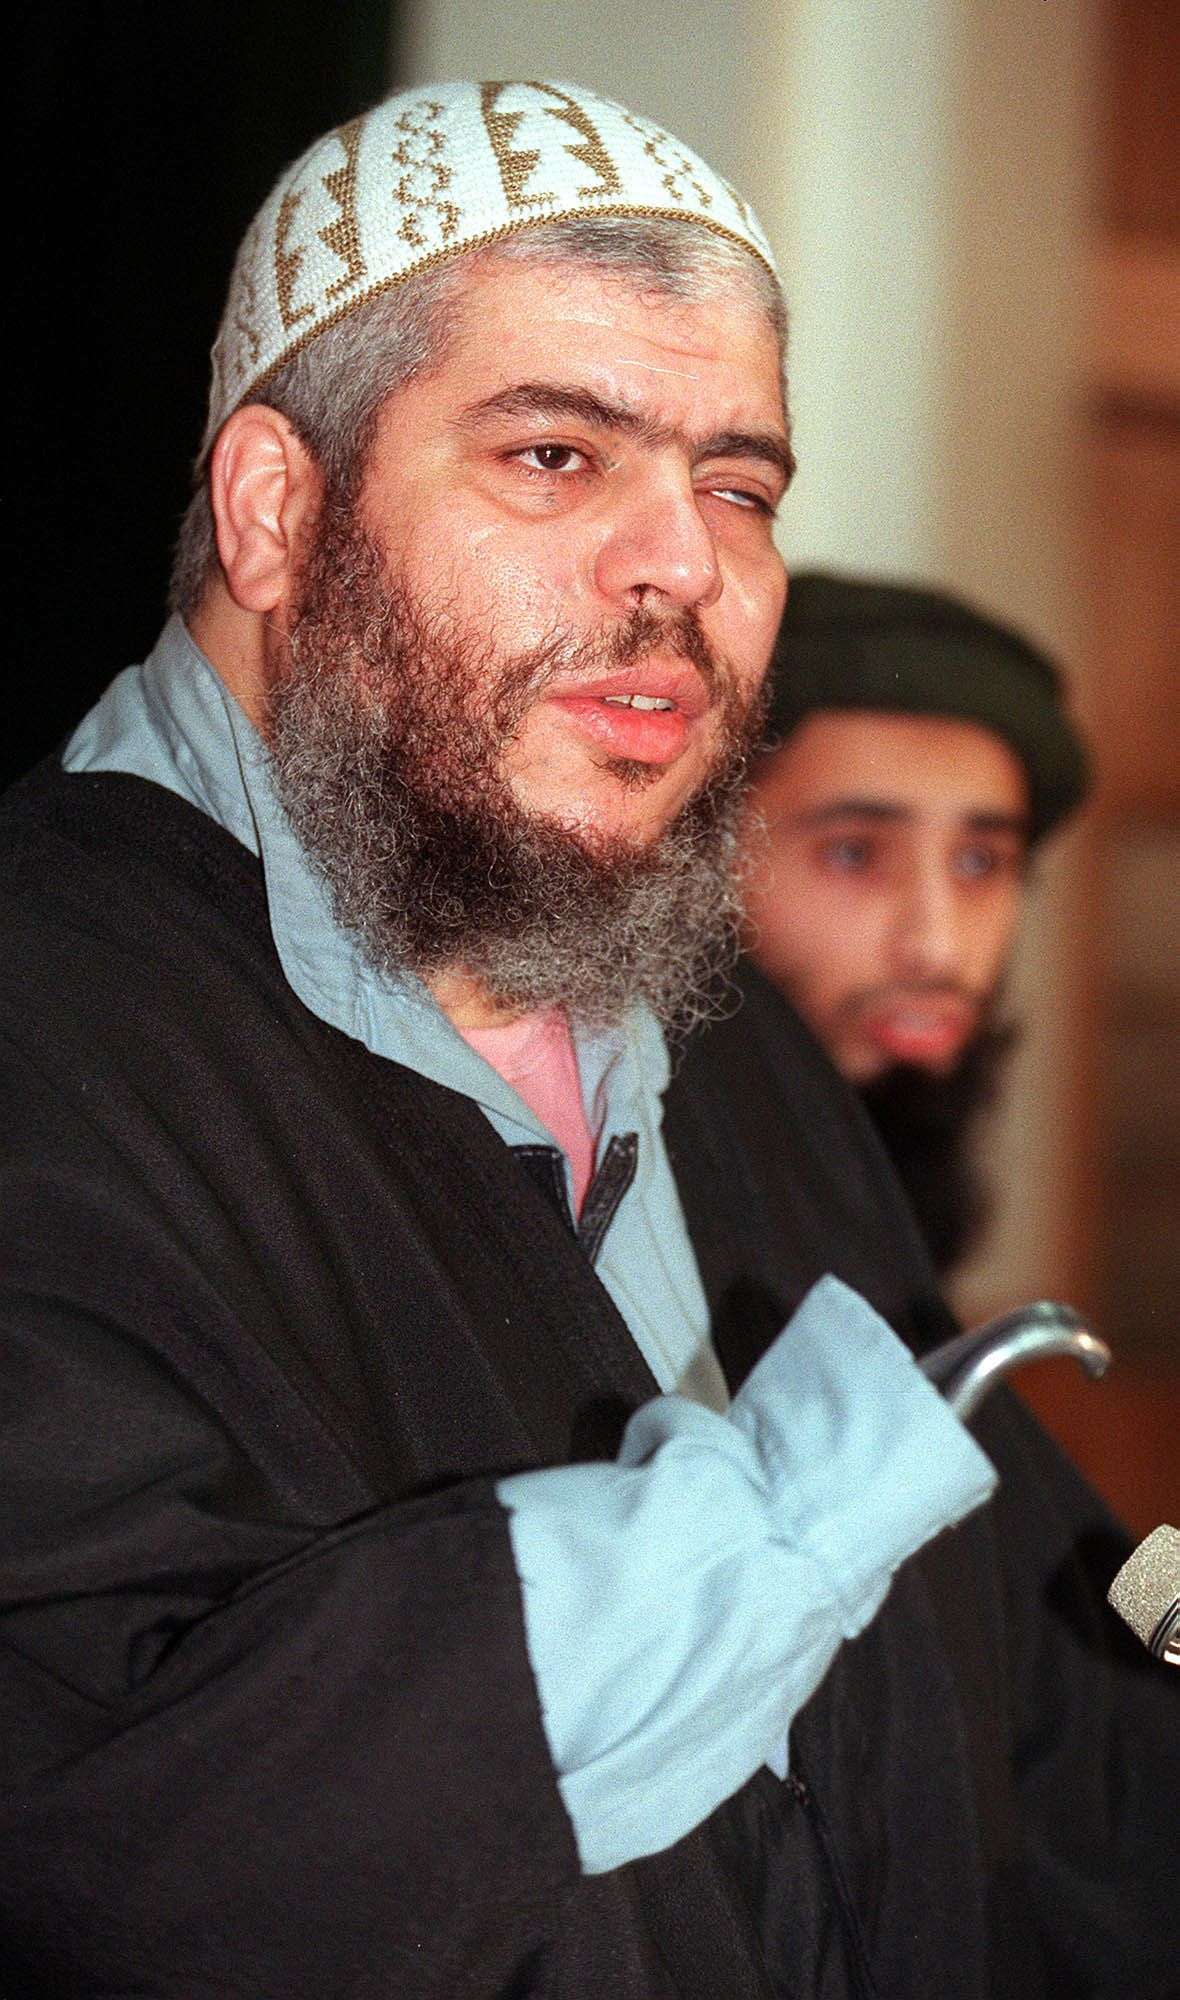 Abu Hamza al-Masri Foto AP ** FILE ** Muslim cleric Abu Hamza al-Masri, left, speaks at a press conference, Jan. 20, 1999. A jury sitting at London's, Old Bailey Court convicted radical Muslim cleric Abu Hamza al-Masri on Tuesday Feb. 7, 2006, of fomenting racial hatred and inciting followers to kill non-Muslims. Al-Masri, 47, the former imam at London's Finsbury Park mosque was also found guilty of possessing a terrorist document as well as threatening or abusive recordings. Al-Masri, Britain's best-known Islamist orator, could receive a maximum sentence of life in prison. The jury of seven men and five women found al-Masri guilty on seven of nine charges of soliciting murder. He was also convicted on two of four charges of stirring racial hatred. (AP Photo/Alastair Grant)